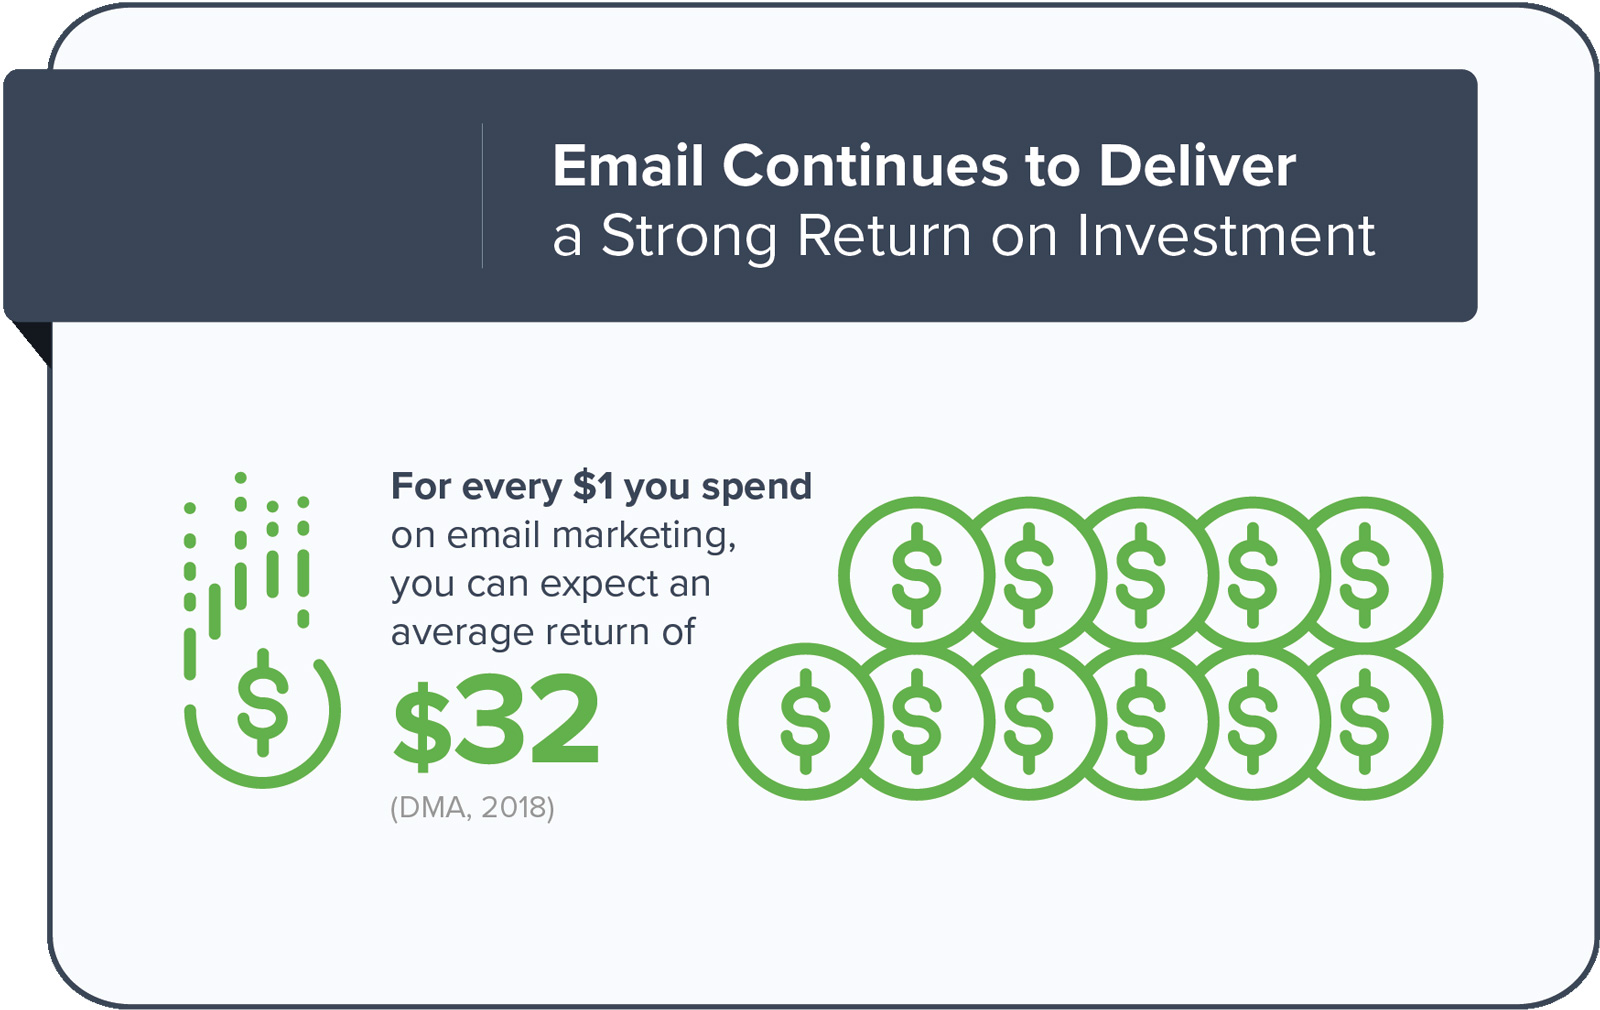 dma stats email ROI